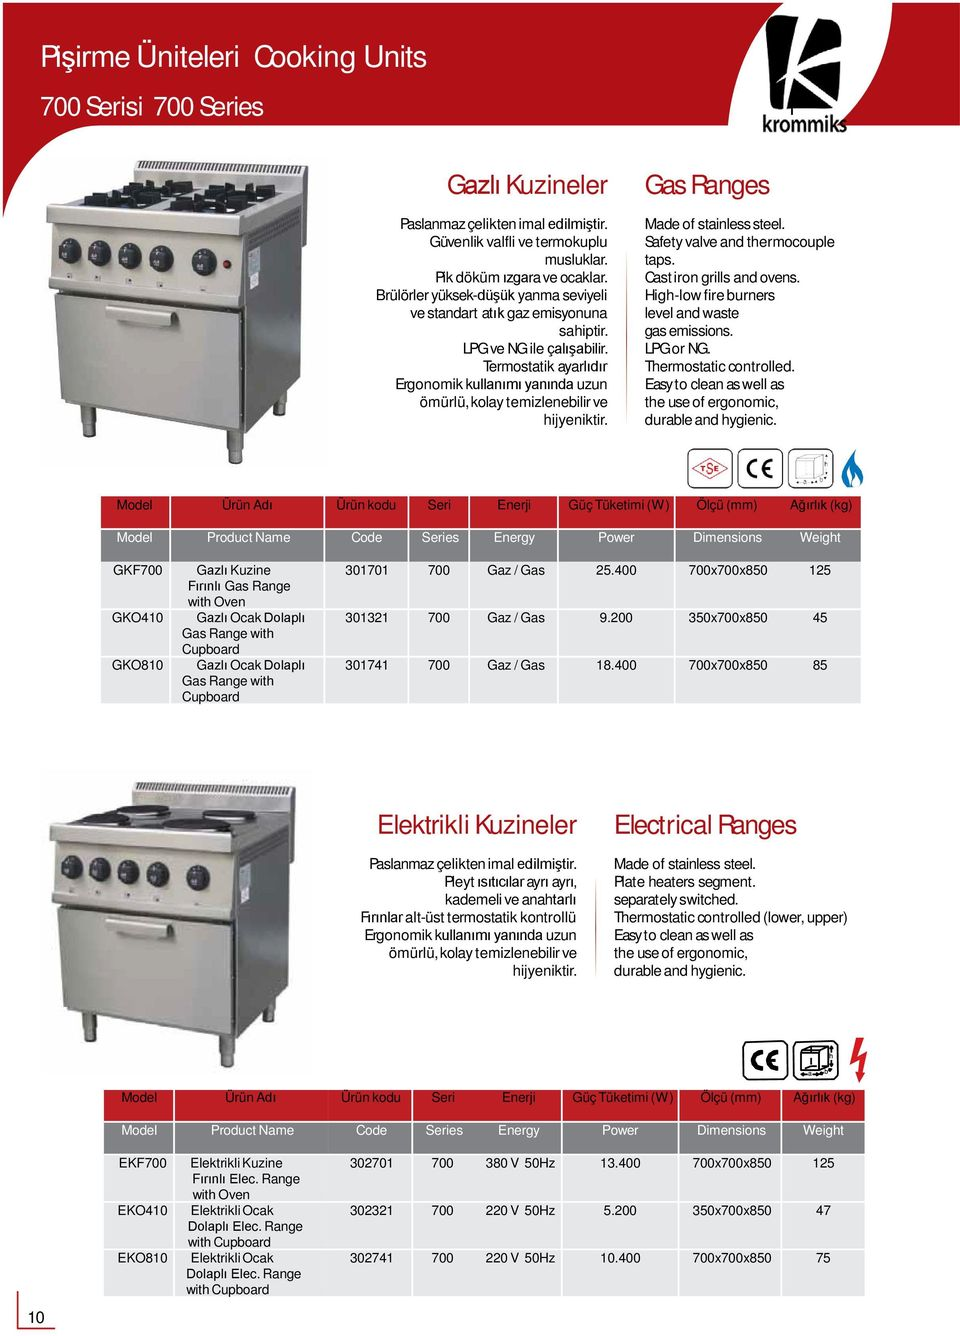 Termostatik ayarlıdır Ergonomik kullanımı yanında uzun ömürlü,kolay temizlenebilir ve hijyeniktir. Gas Ranges Safety valve and thermocouple taps. Cast iron grills and ovens.